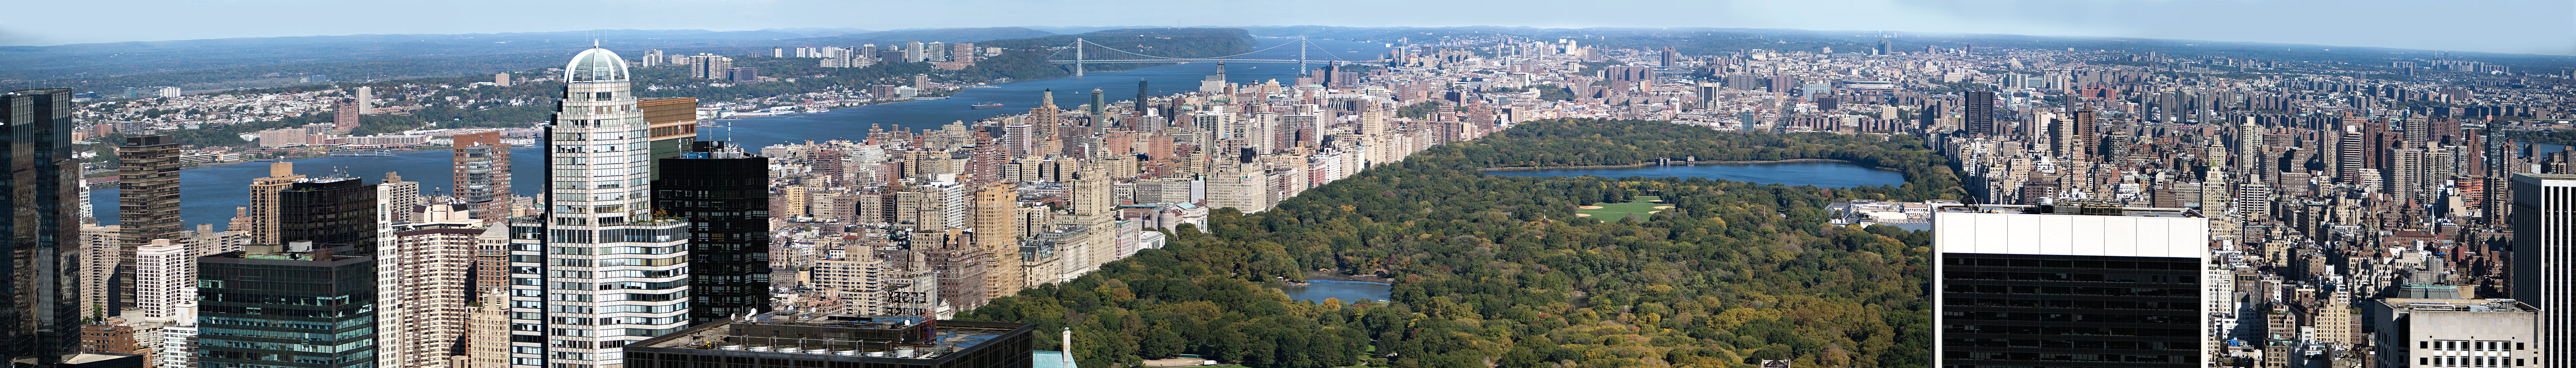 Photo of Looking across Central Park toward Harlem